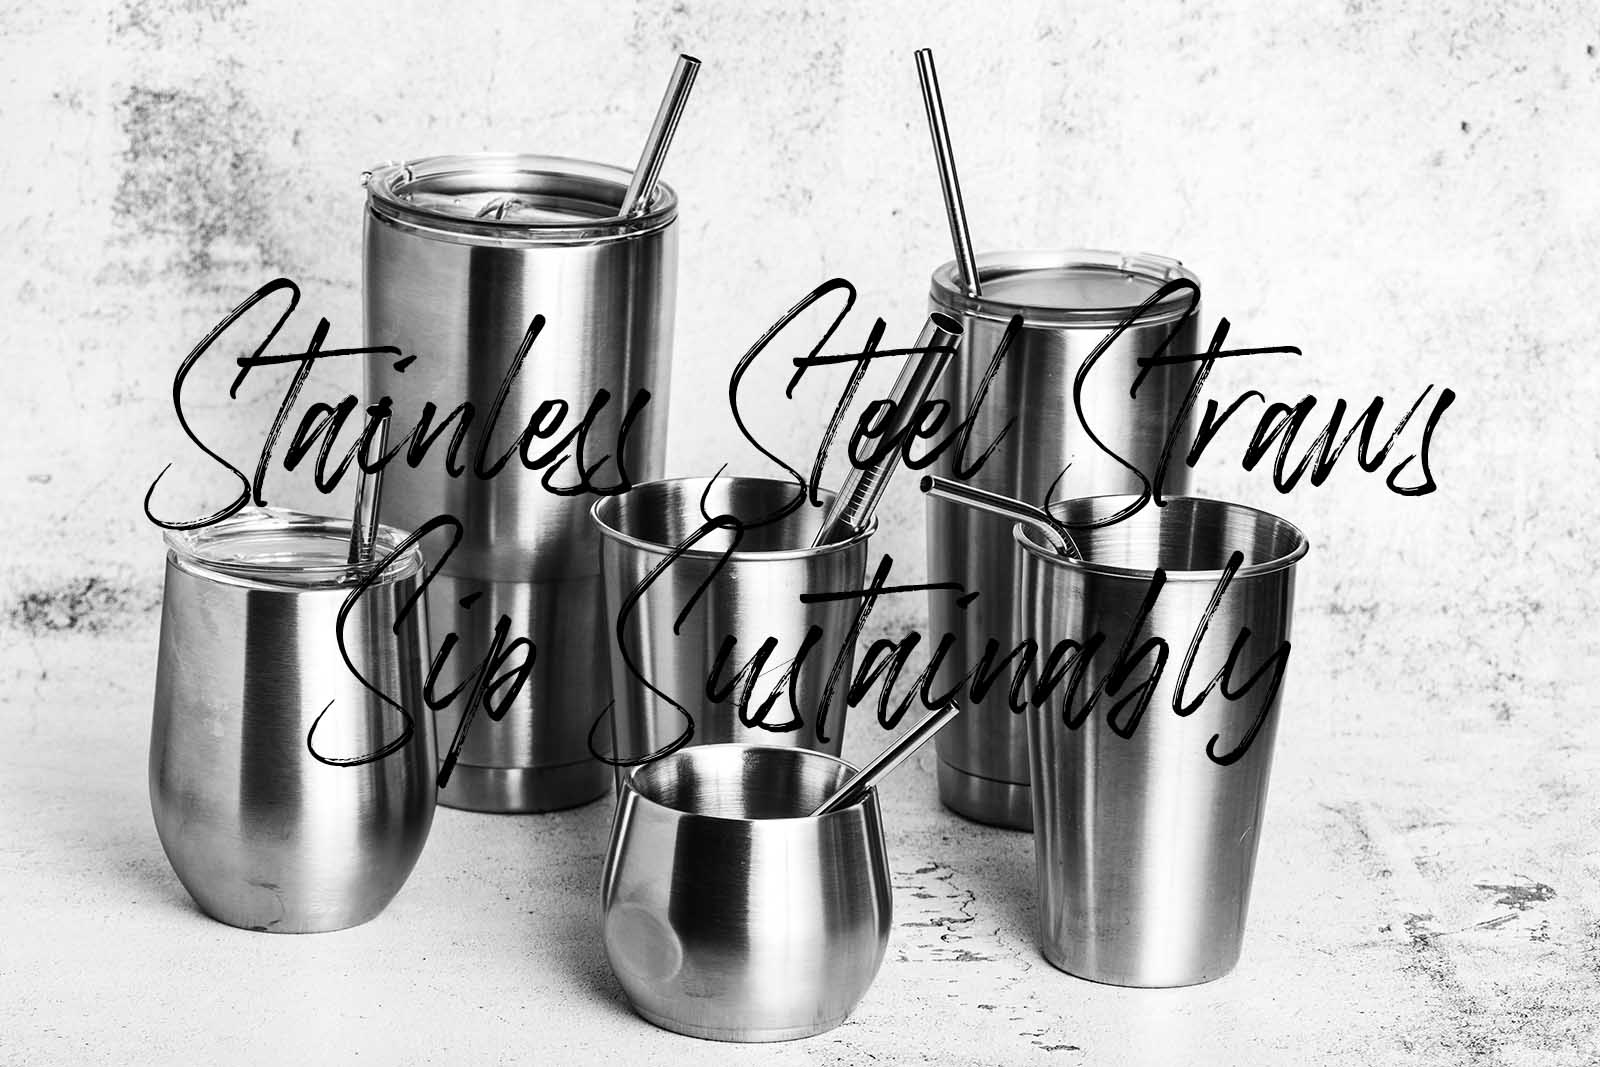 stainless steel drinking straw images